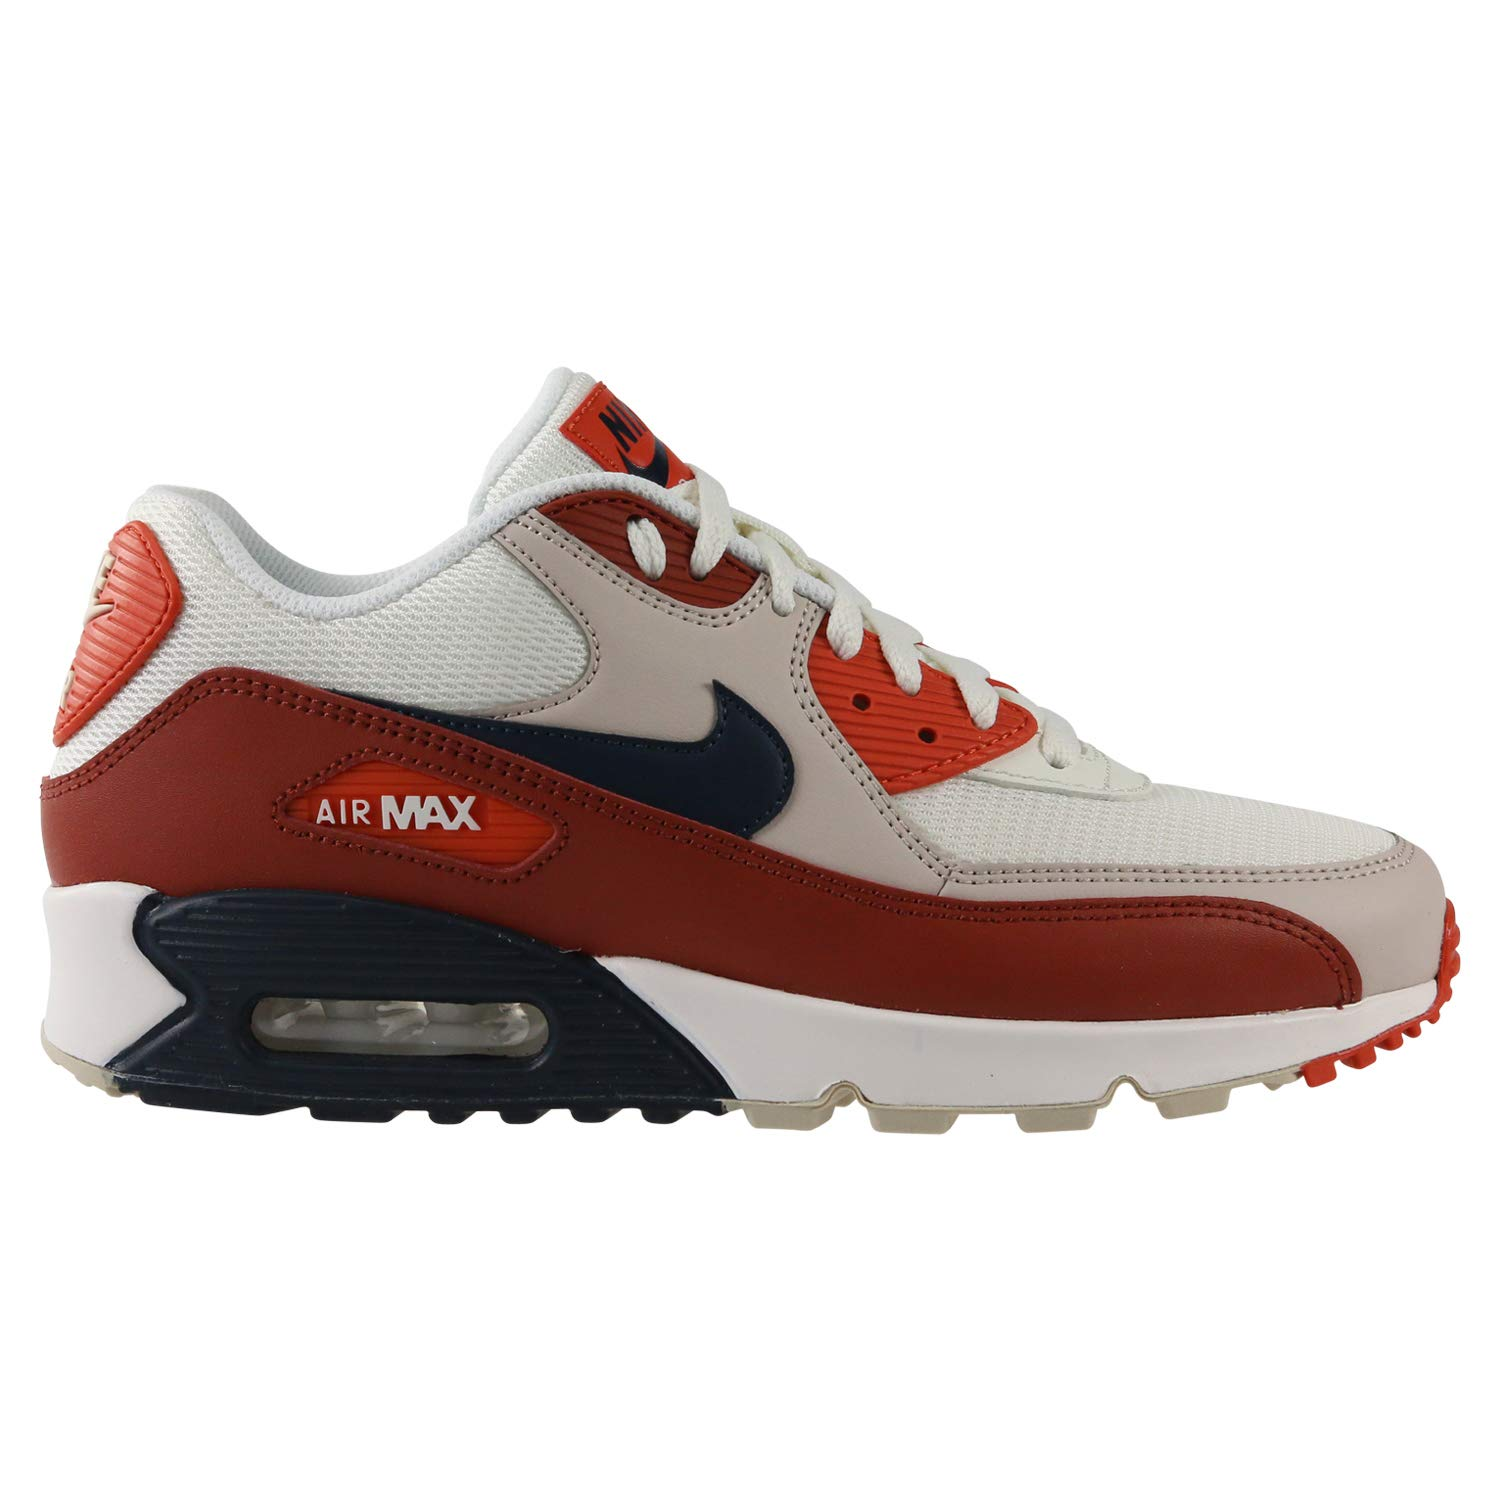 Nike Mens Air Max 90 Essential Running Shoes Mars StoneObsidianVintage Coral AJ1285 600 Size 9